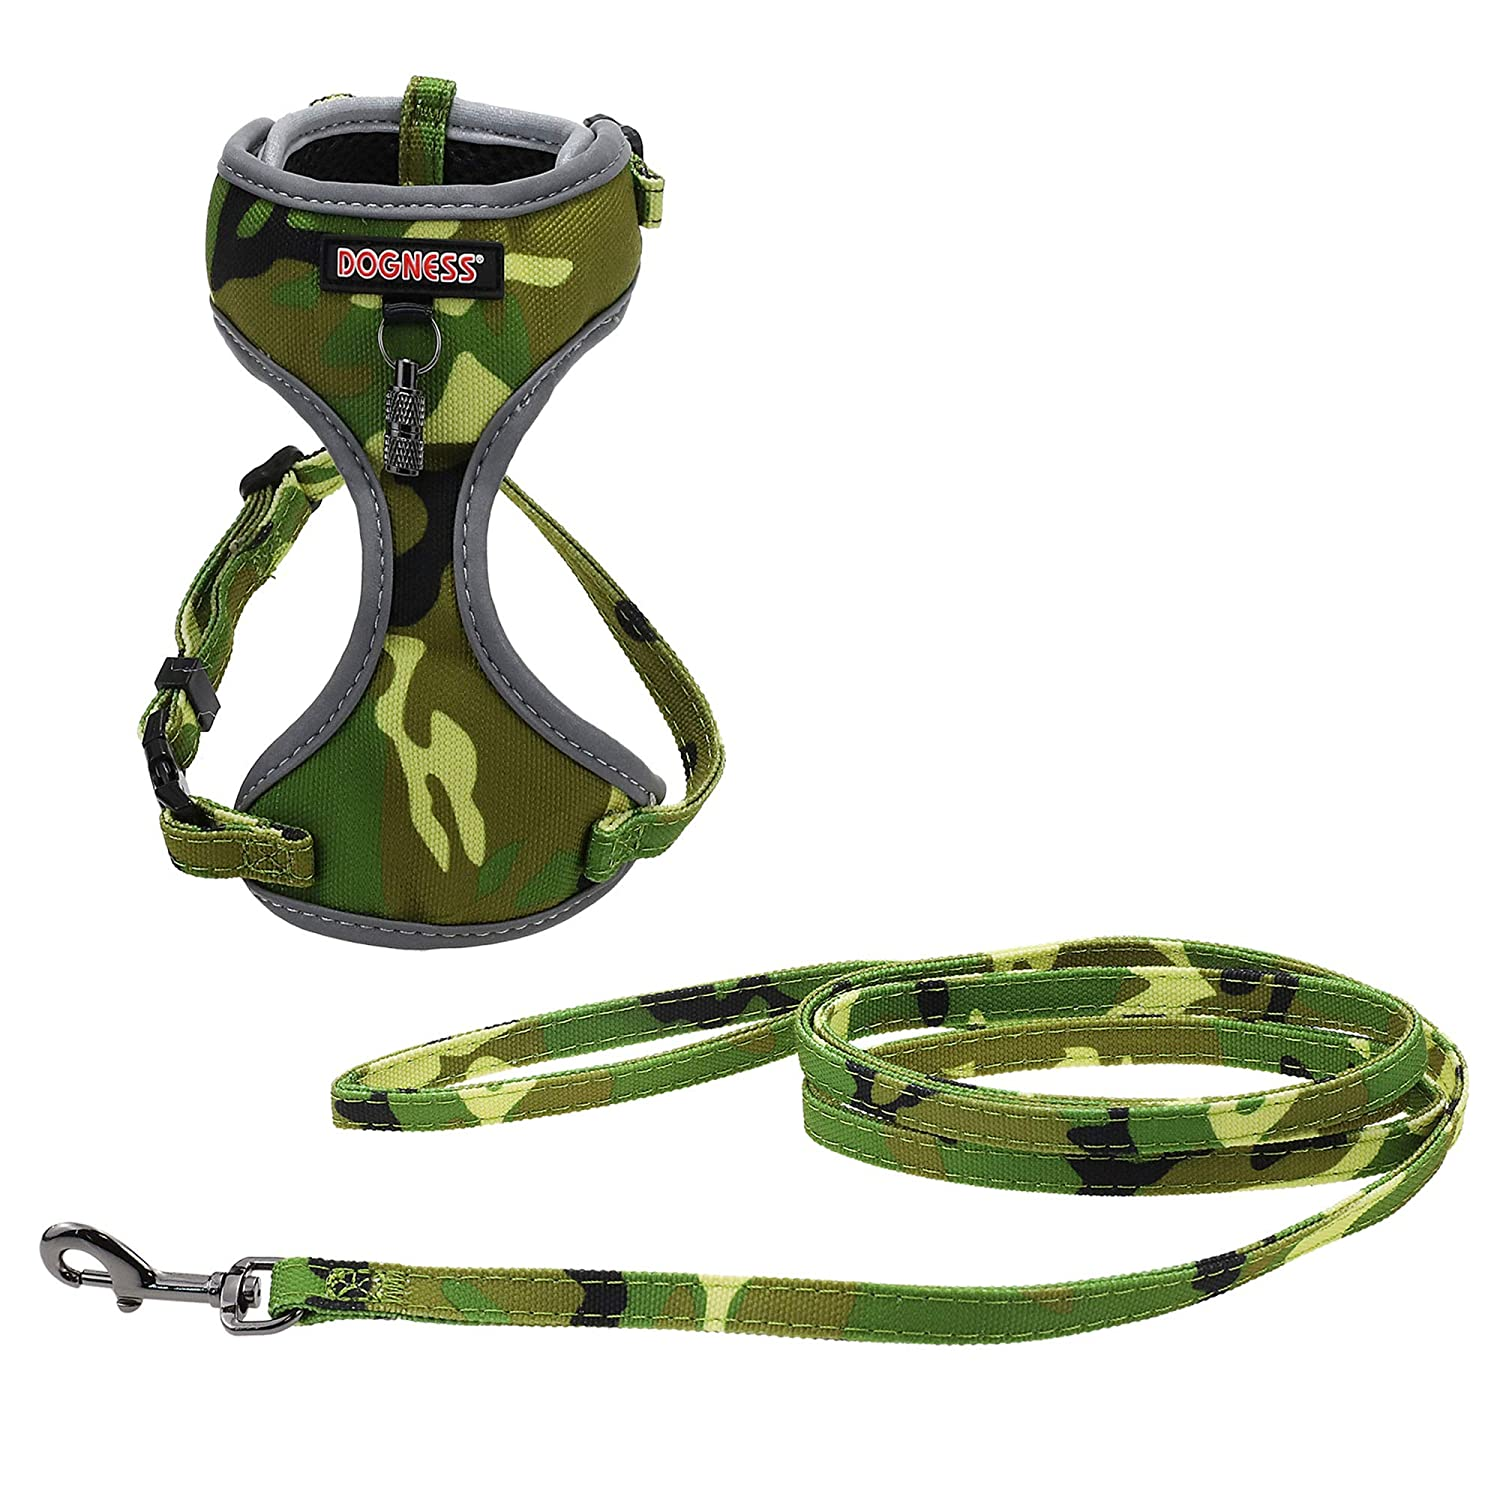 Green DOGNESS Cat&Small Dogs Package Camo GreenSuit for Dog 5kg or Below Tailored for Cats & Small Dogs, Create Harness